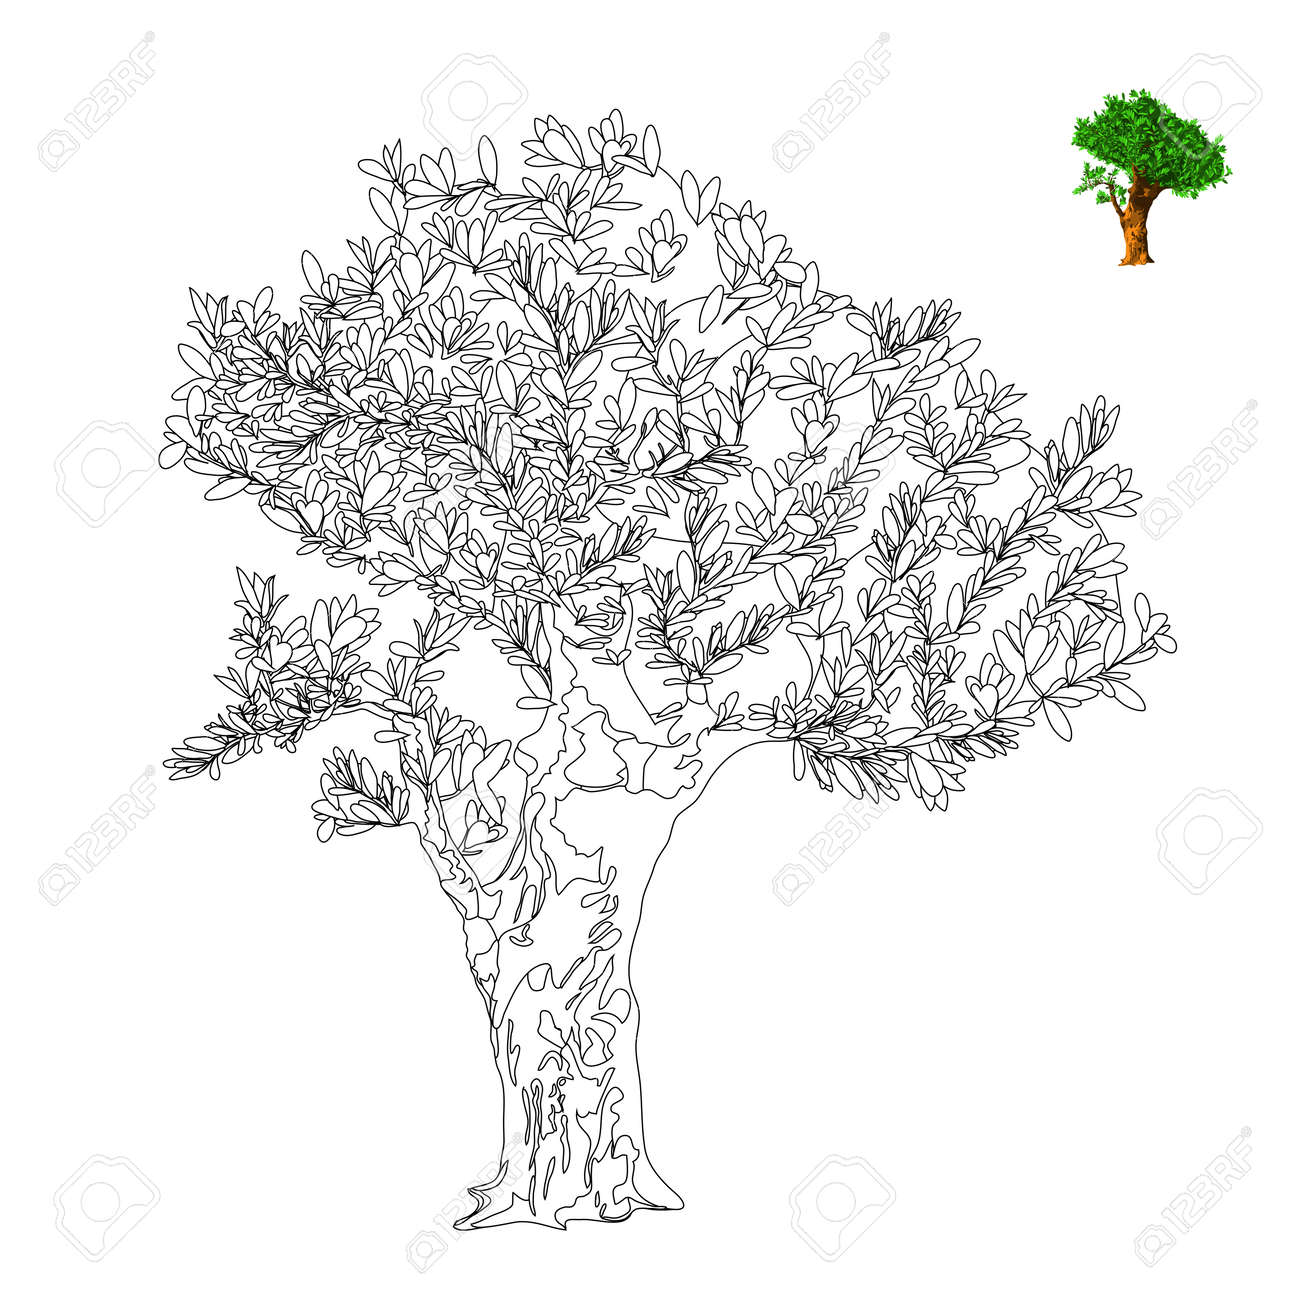 Olive Tree Vector Illustration Antistress Coloring Page Royalty